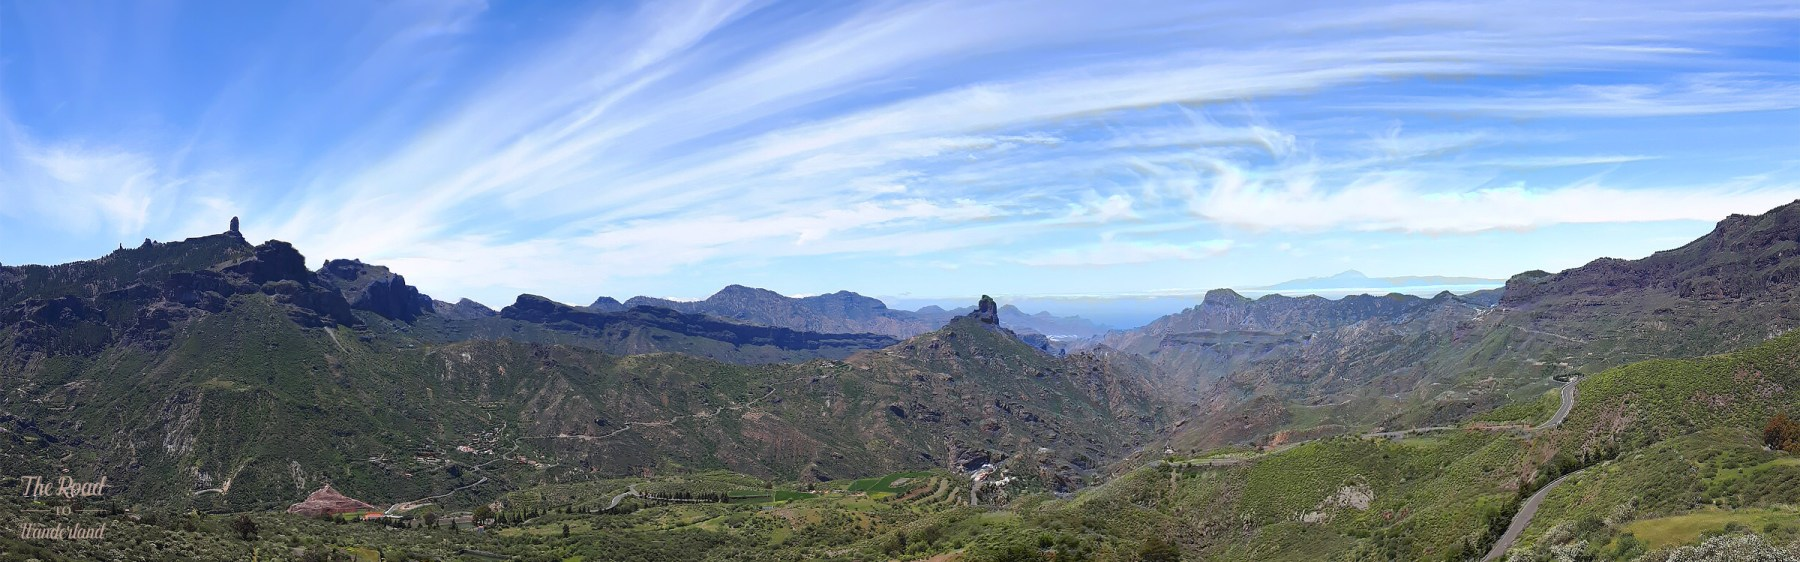 Roque Nublo & Roque Bentayga, the heart of Gran Canaria